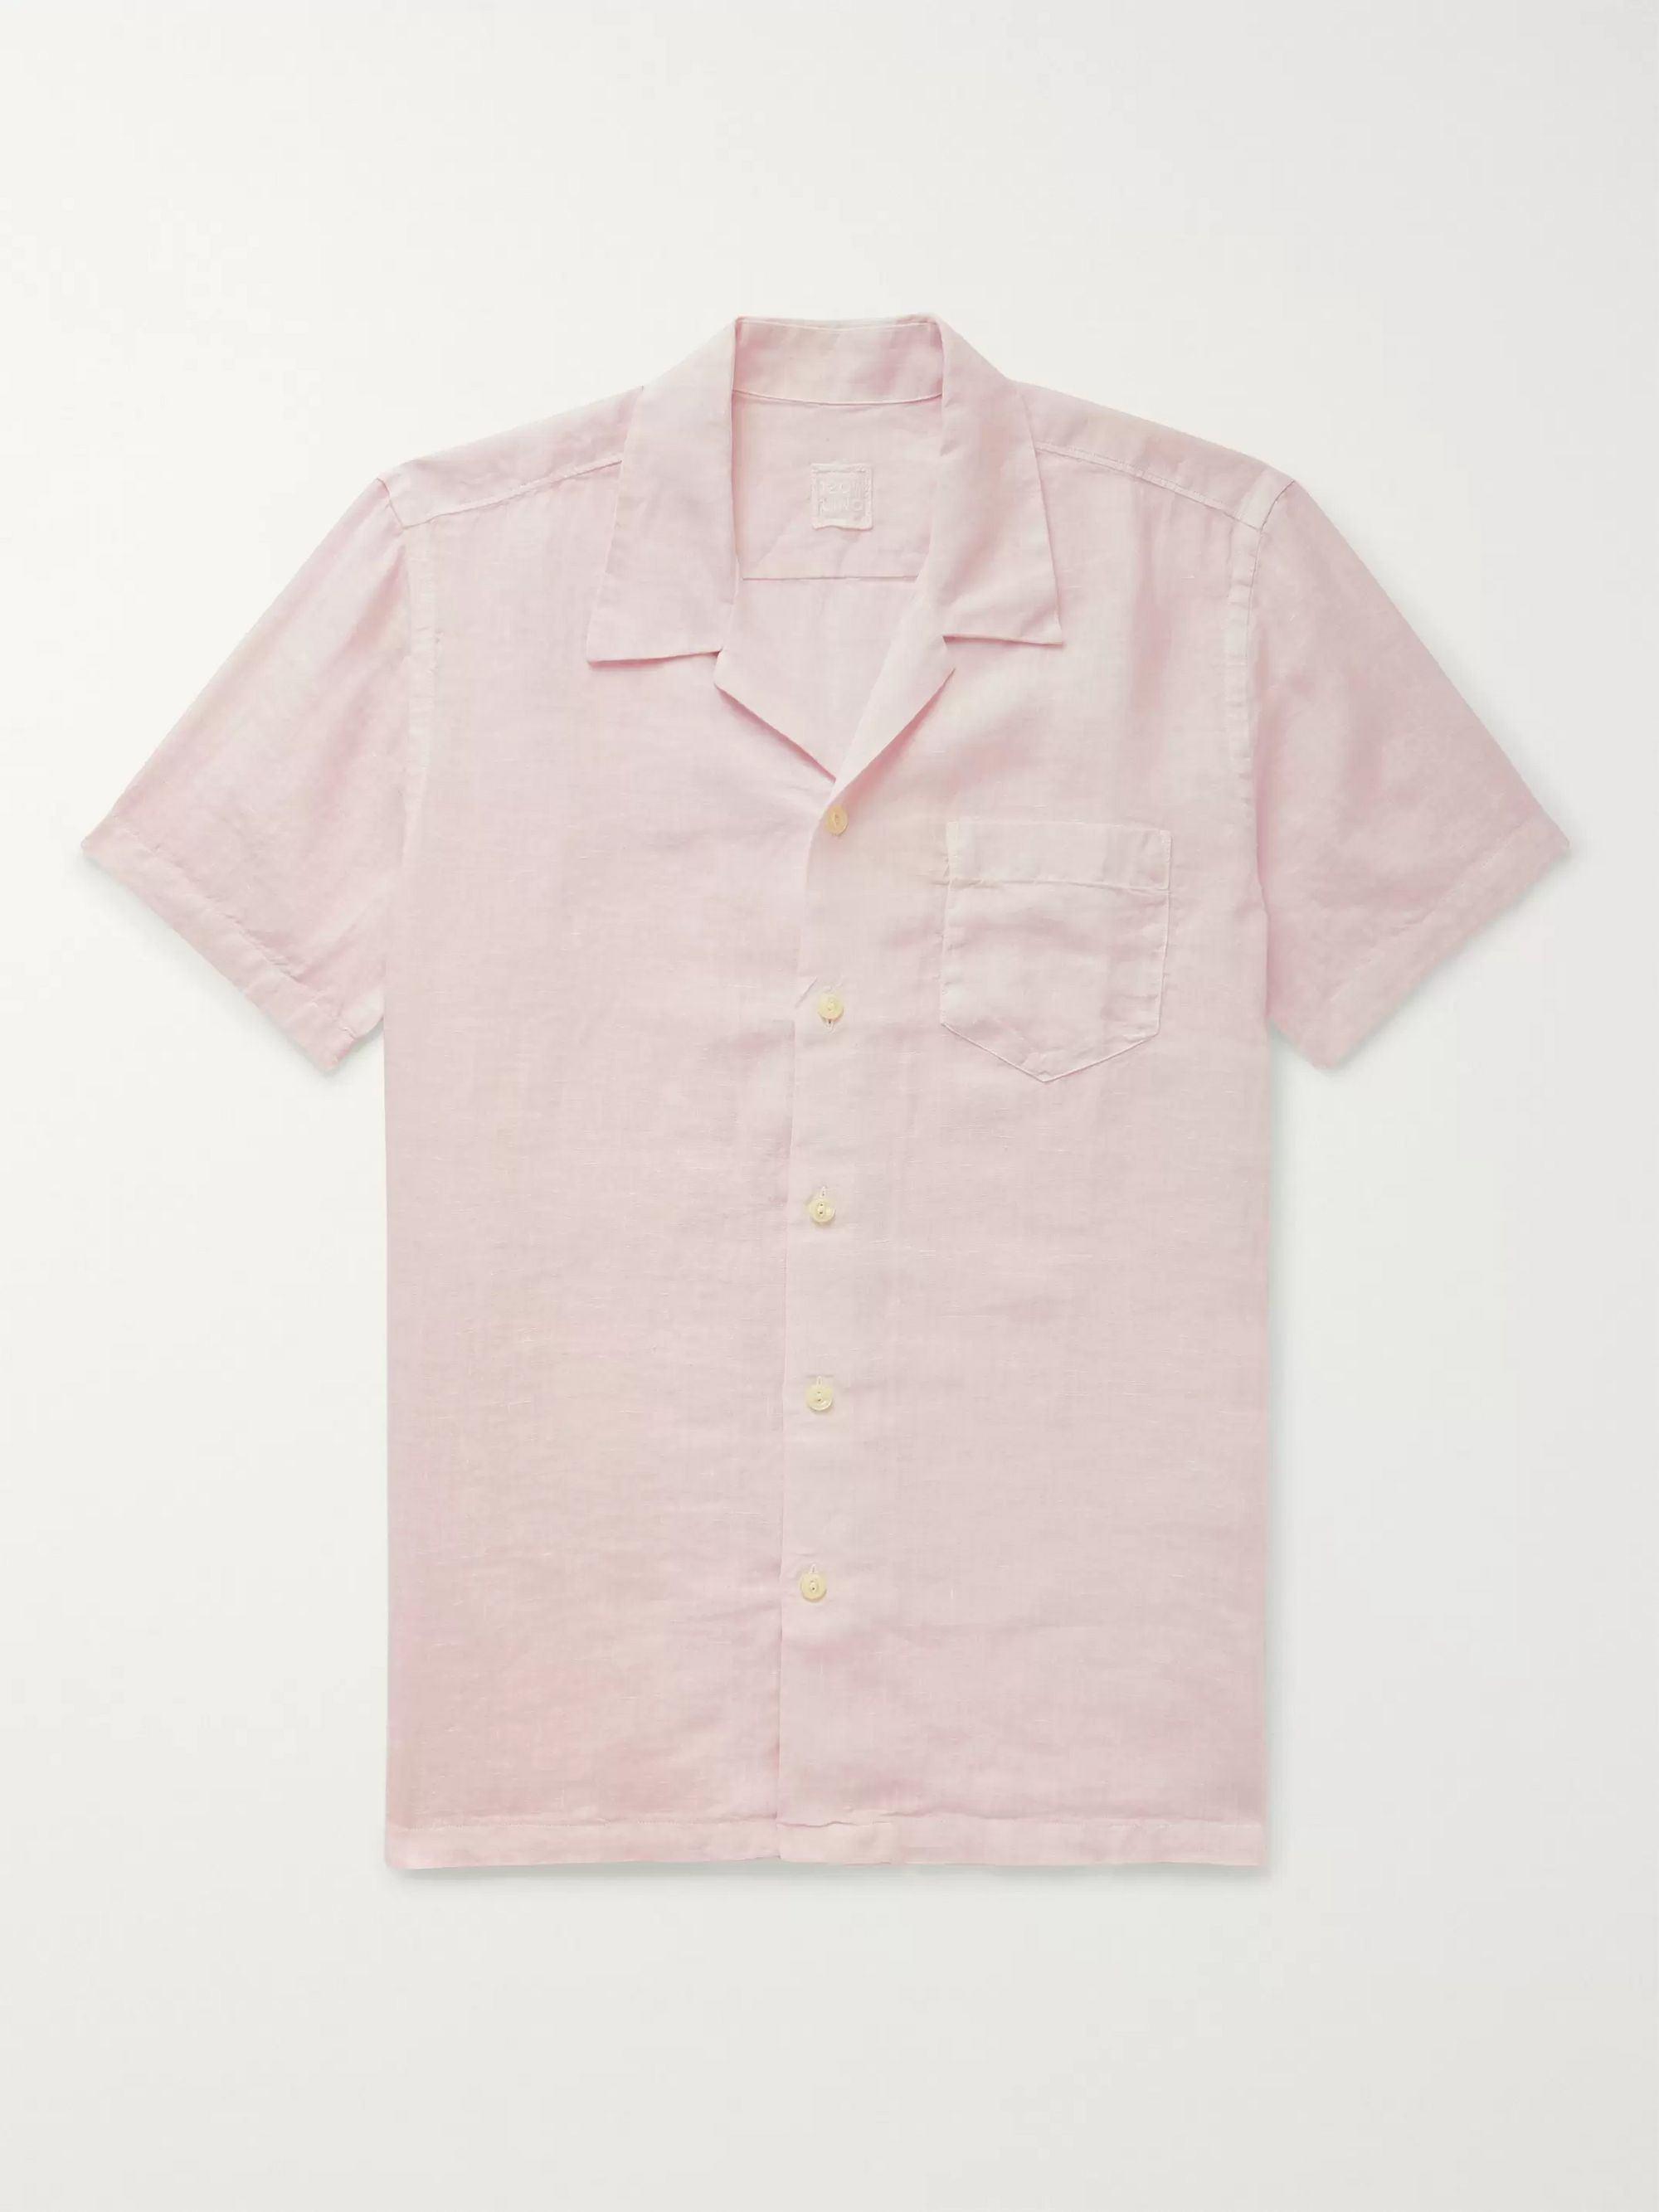 120% Camp-Collar Garment-Dyed Linen Shirt